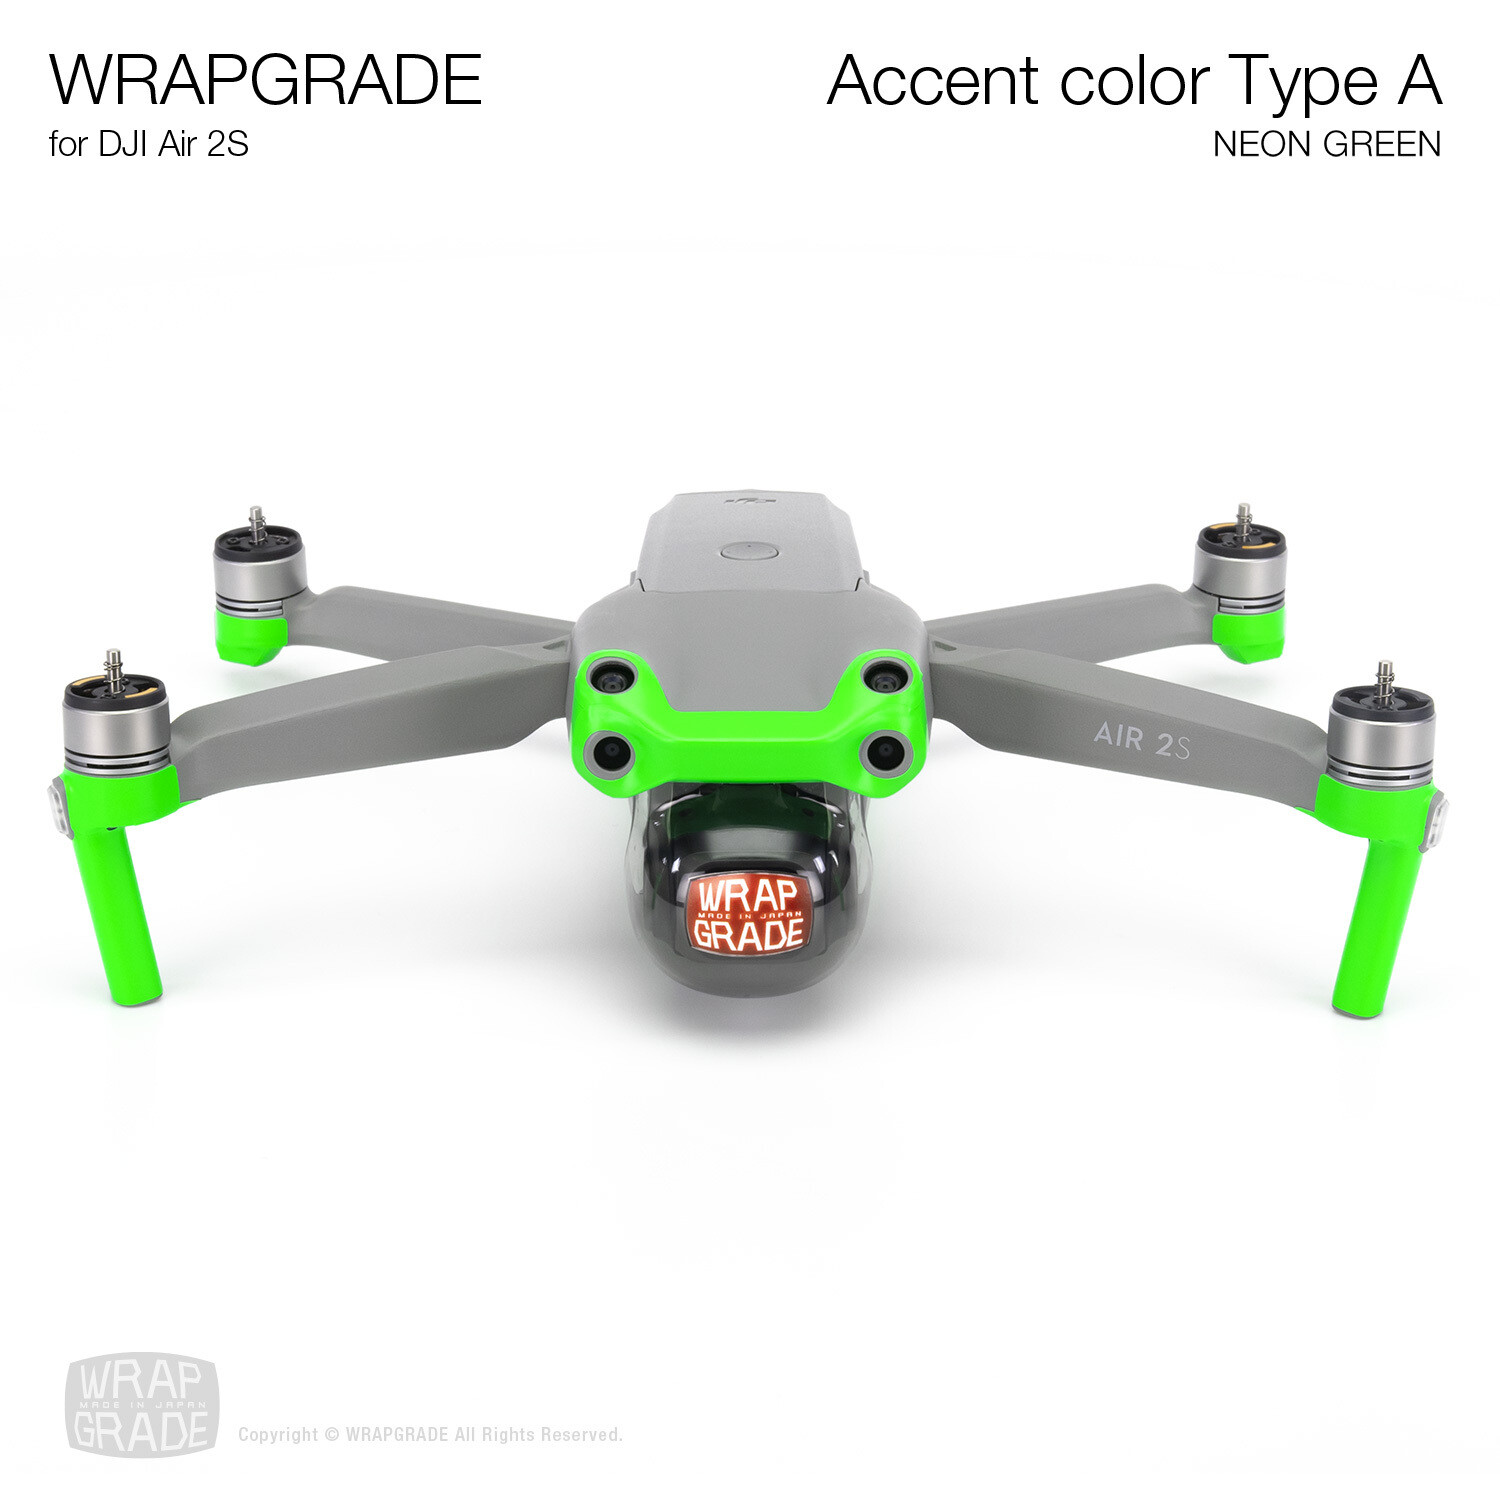 Wrapgrade Skin for DJI Air 2S | Accent Color A (NEON GREEN)